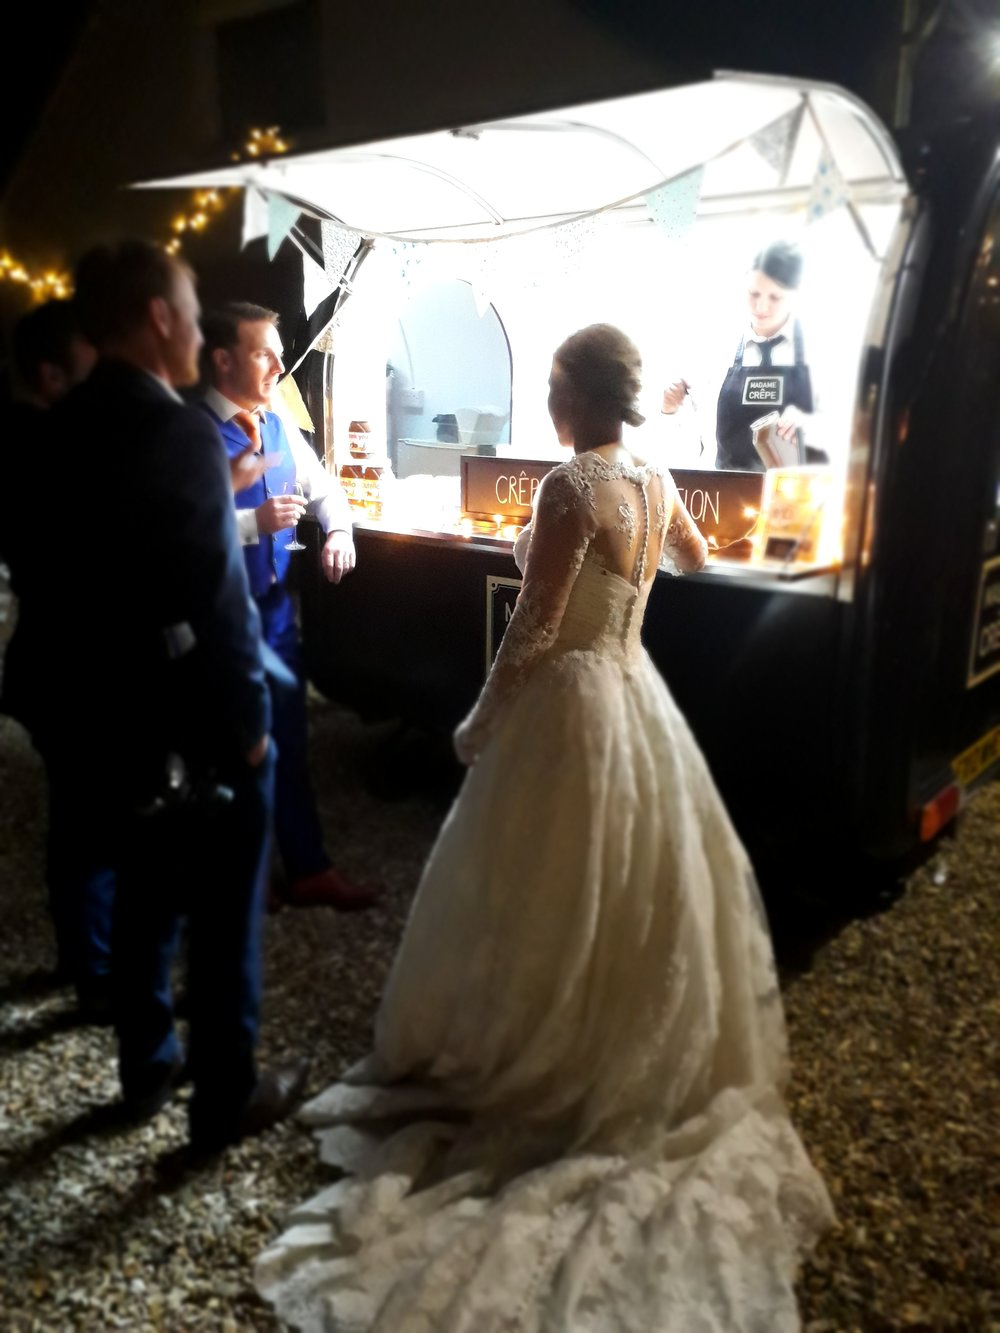 mobile_creperie_retford_weddings_birthday_party_nutella_organic_homemade_fresh_french_food_caterer_madamecrepe_4